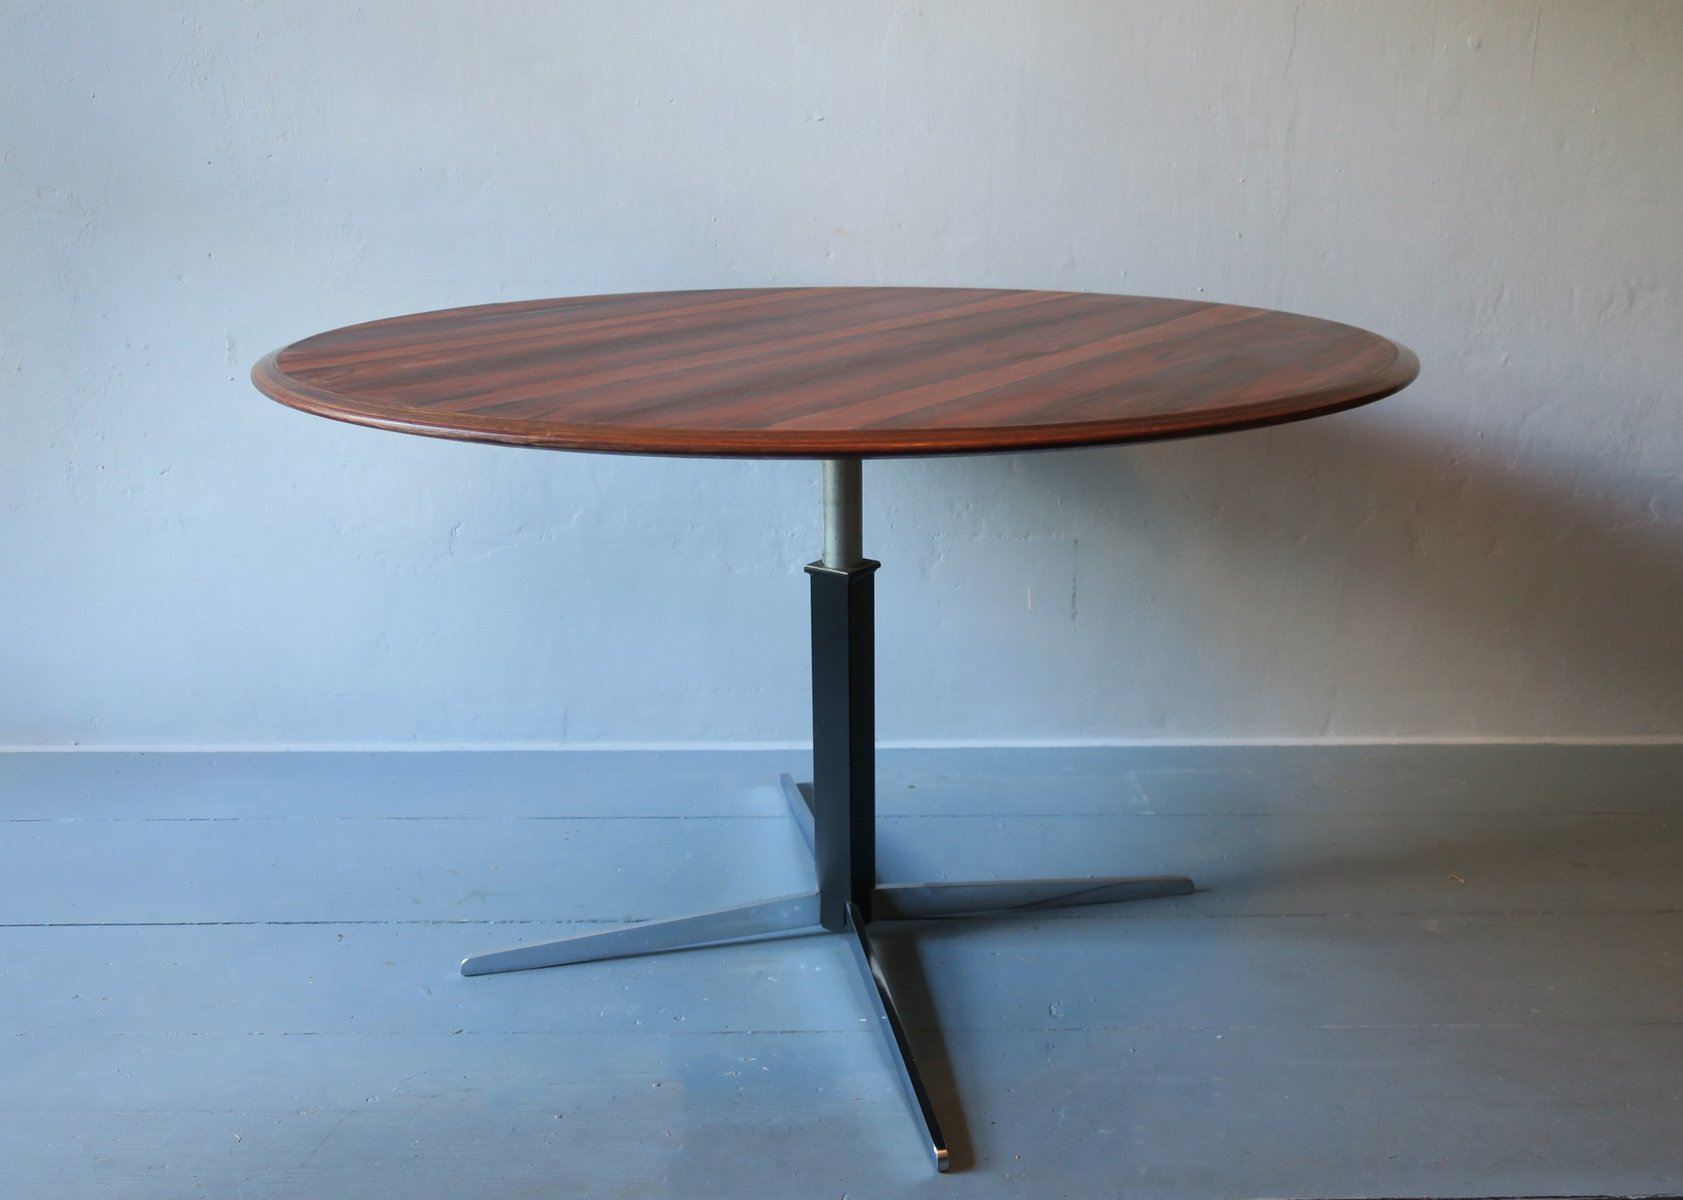 Adjustable Rosewood Dining Or Coffee Table By Wilhelm Renz 1960s For Sale At Pamono